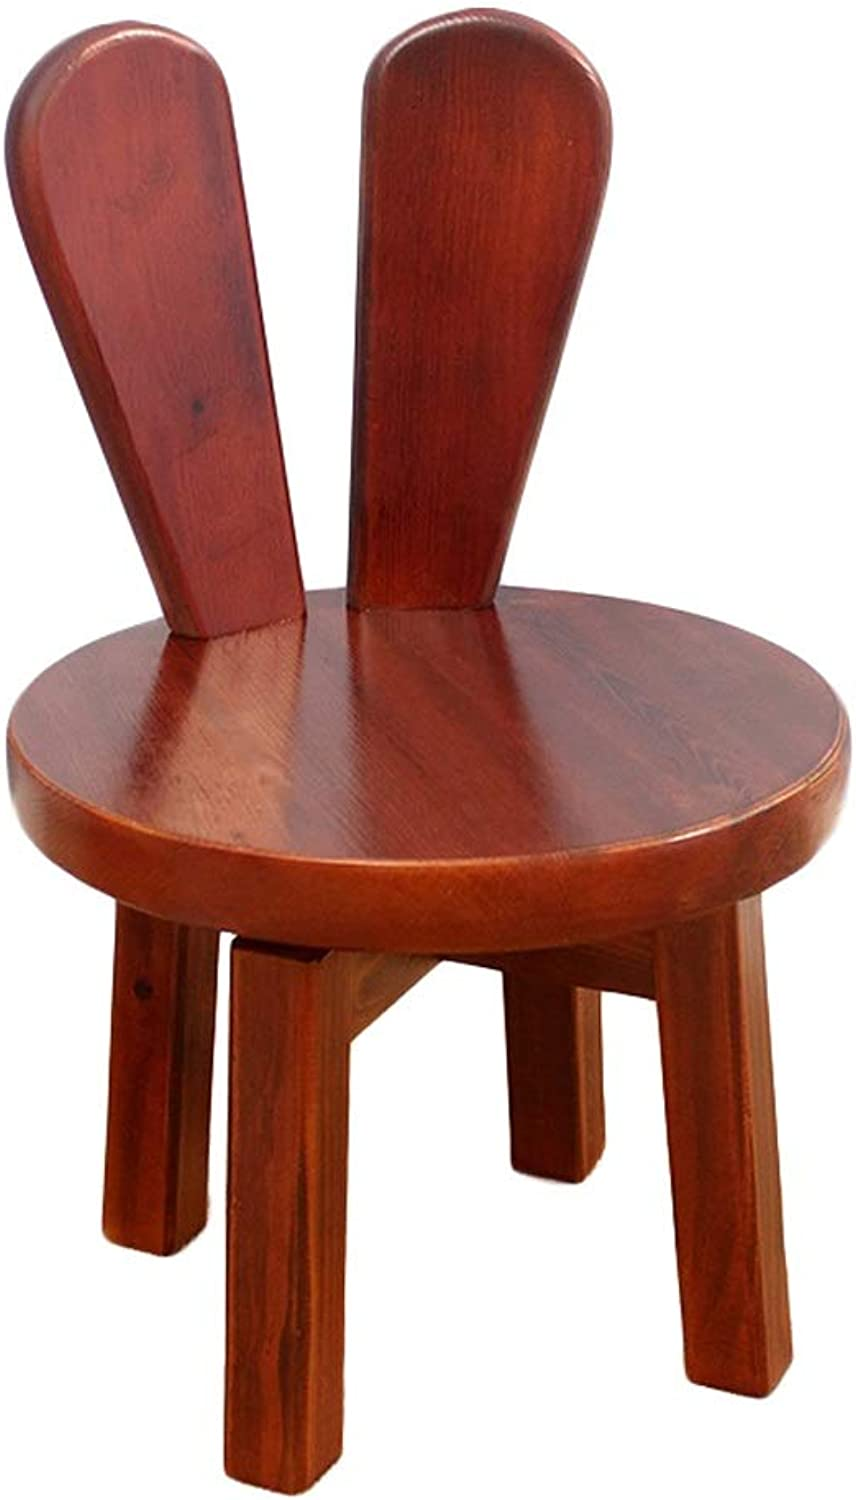 Small Chair Home Back Low Stool shoes Bench Stool Low Chair